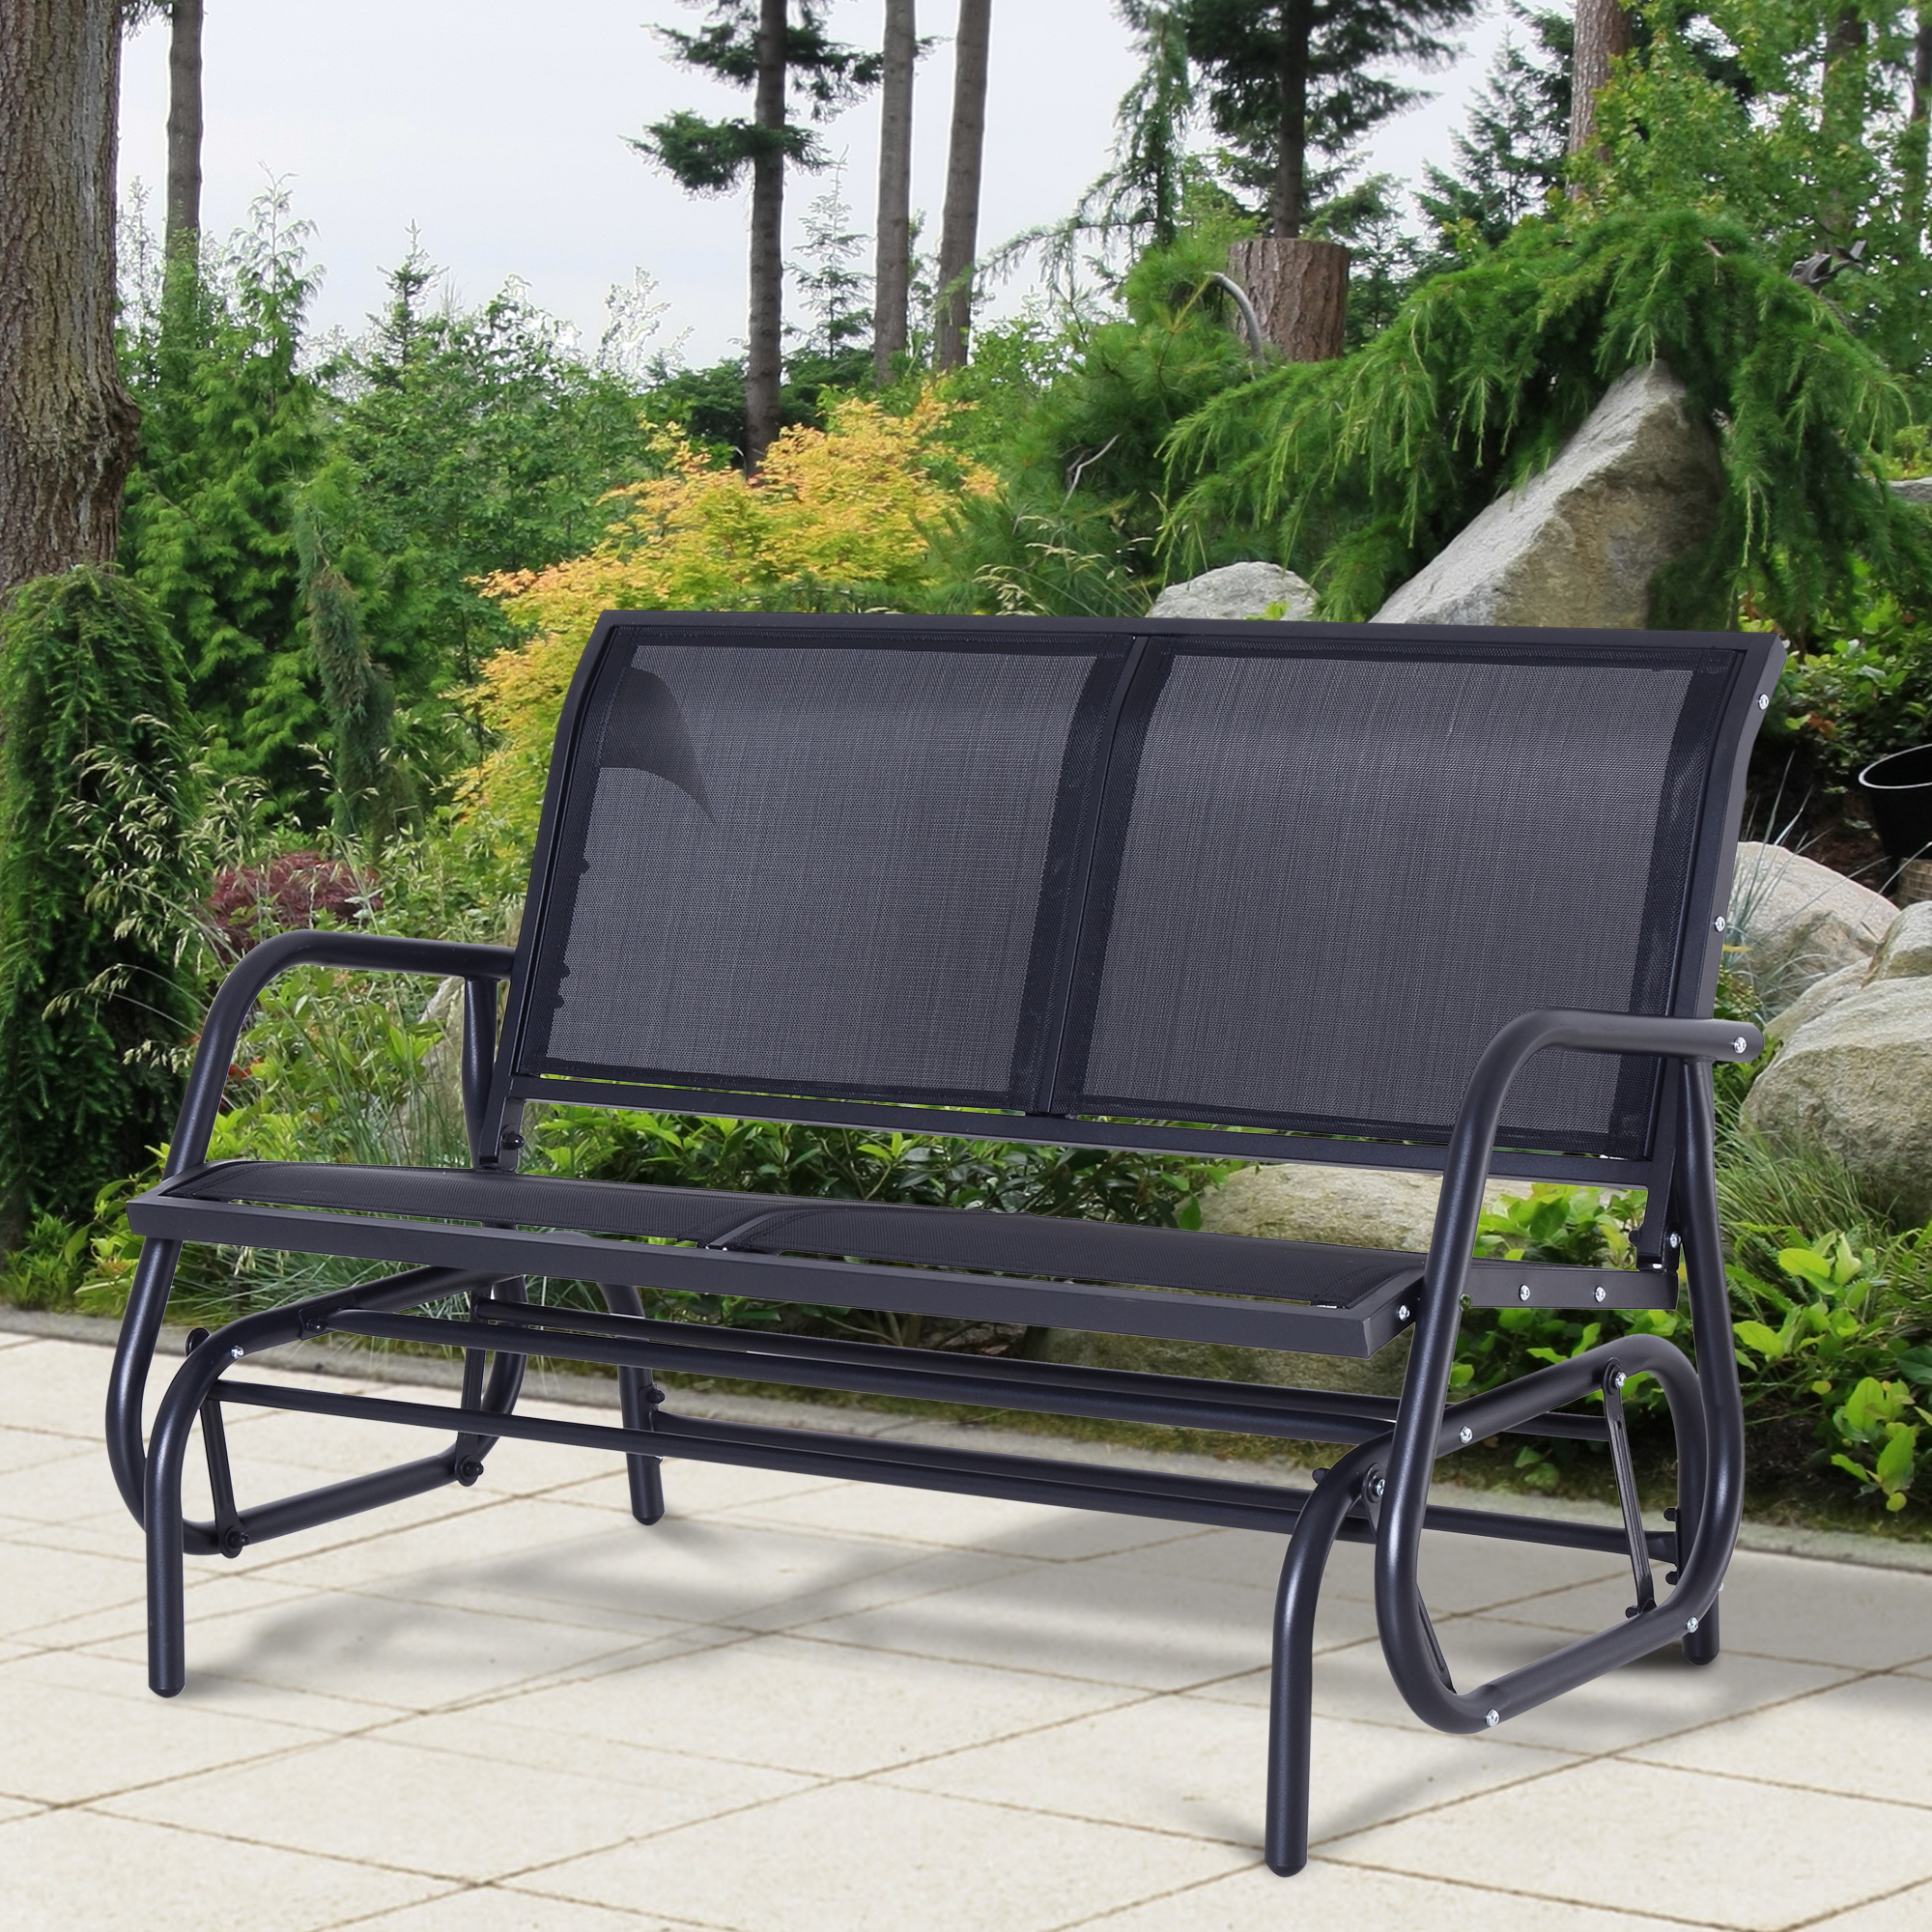 Details About Outsunny Patio Garden Glider Bench 2 Person Double Swing Chair Rocker Deck Black With Fashionable Steel Patio Swing Glider Benches (View 3 of 25)